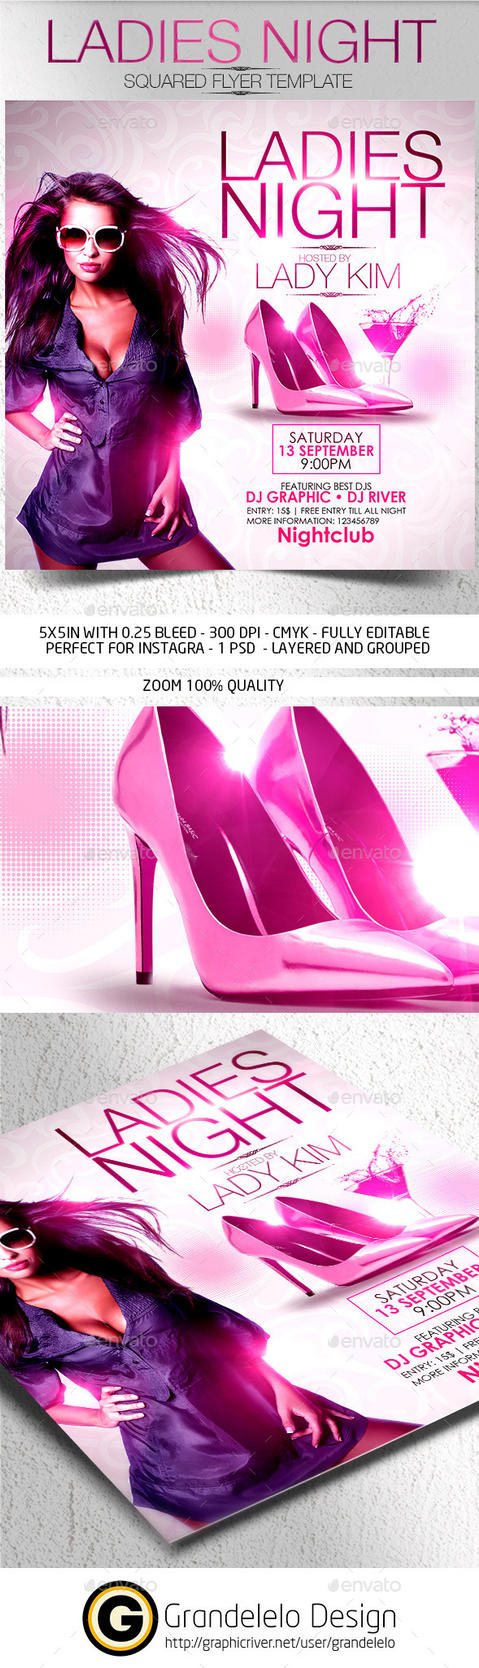 Ladies Night Flyer Template 2015 by Grandelelo